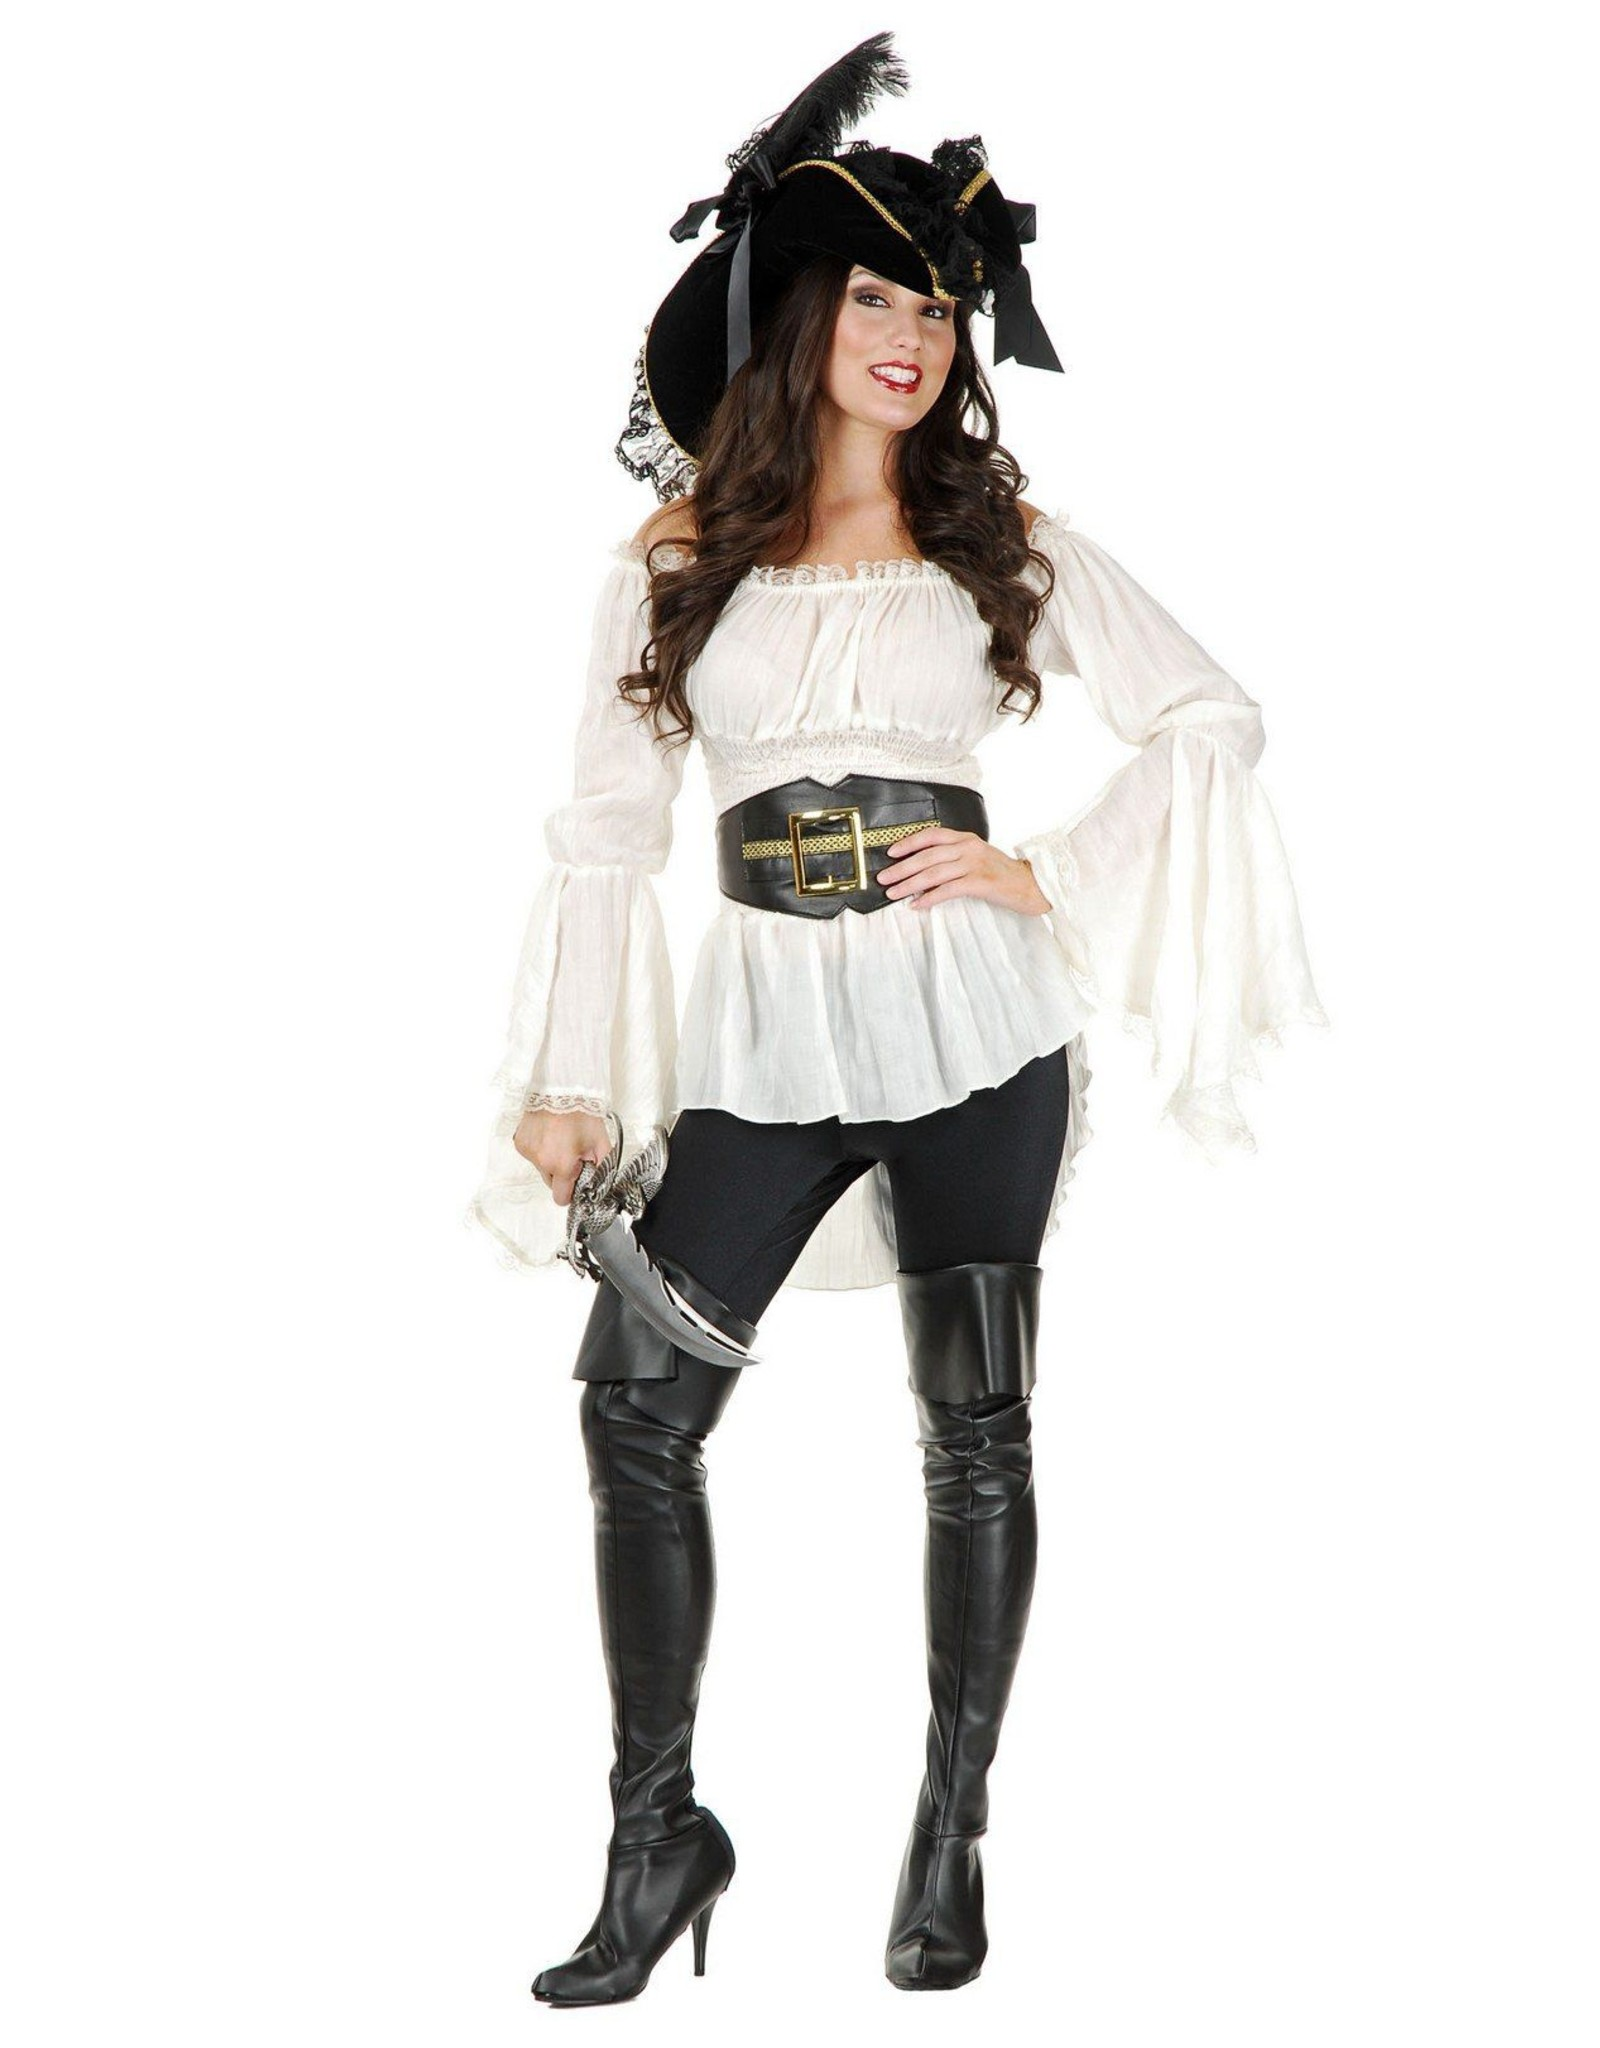 Charades Thigh High Pirate Boots S/M